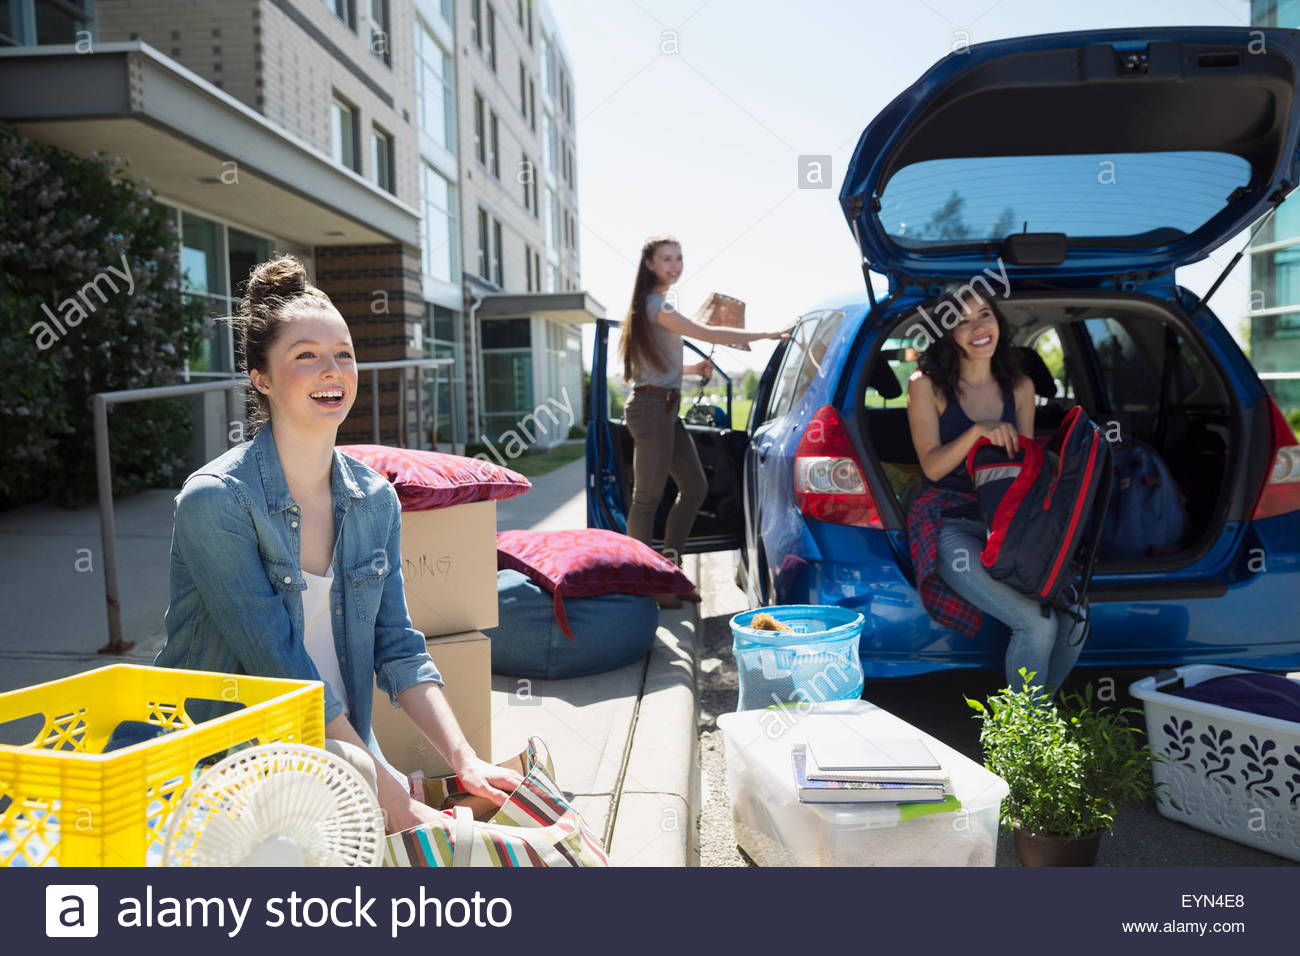 college students unloading car moving into college dorm stock college students unloading car moving into college dorm